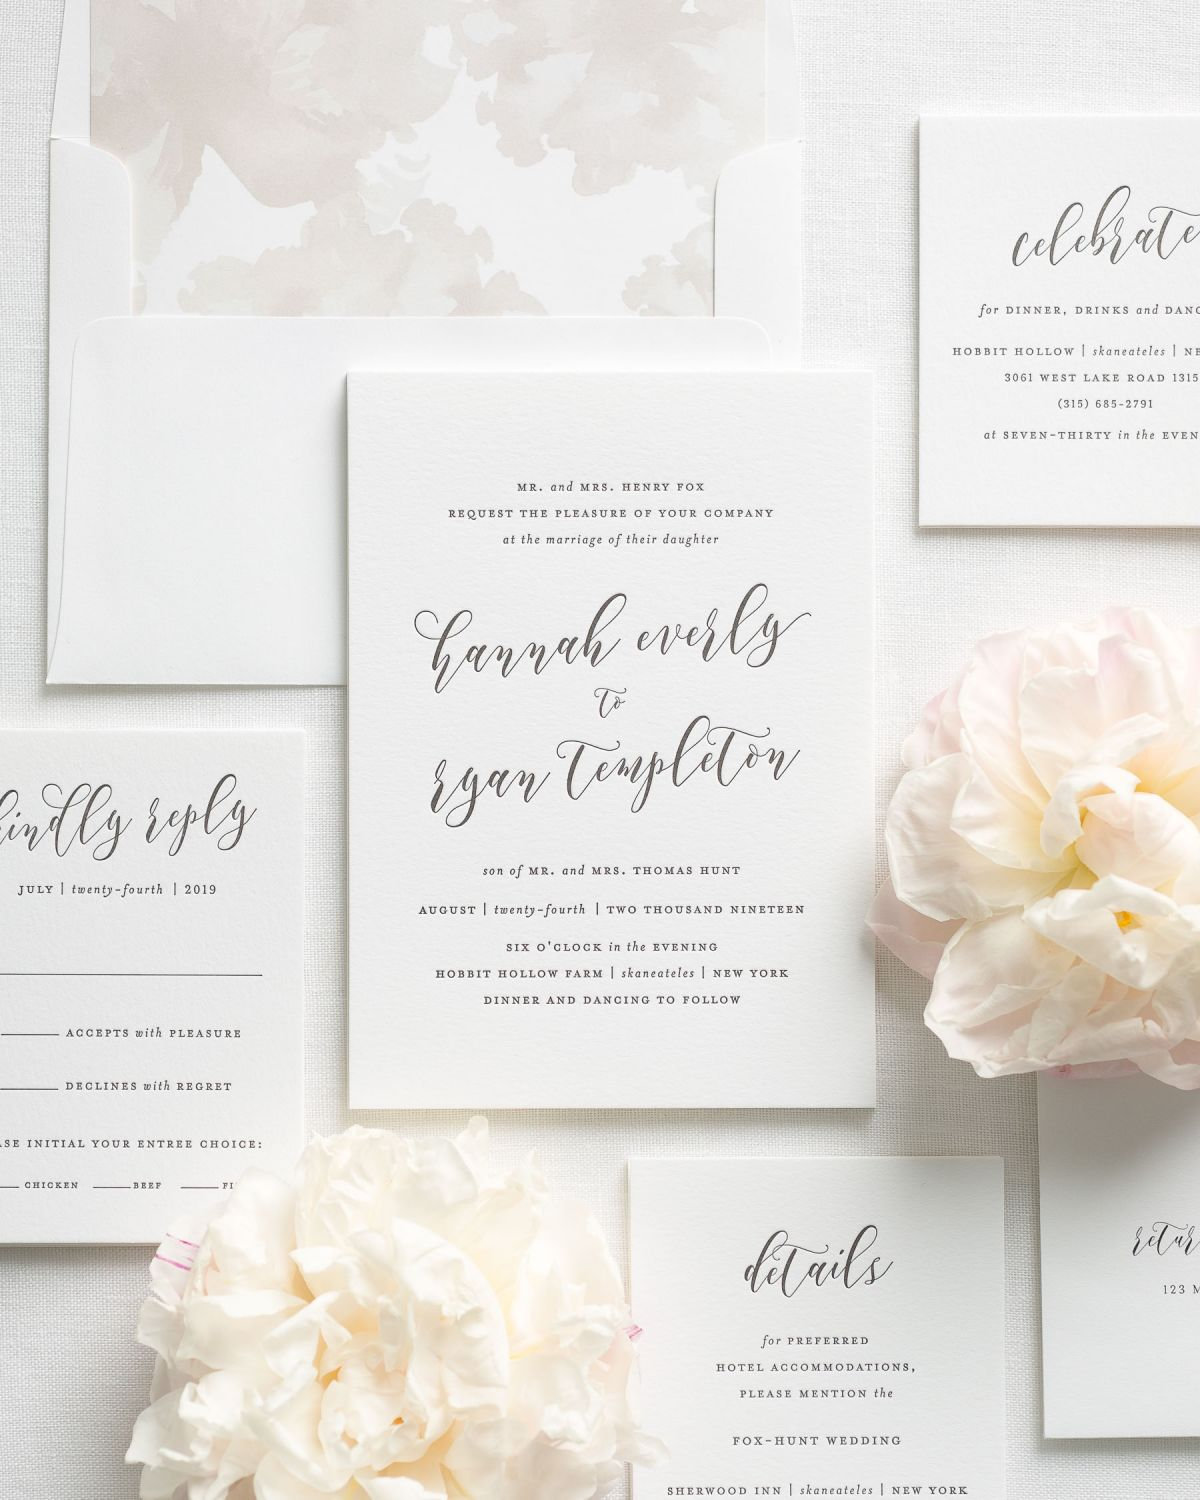 Letterpress Wedding Invitation Suite with Enclosures and Watercolor Envelope Liner